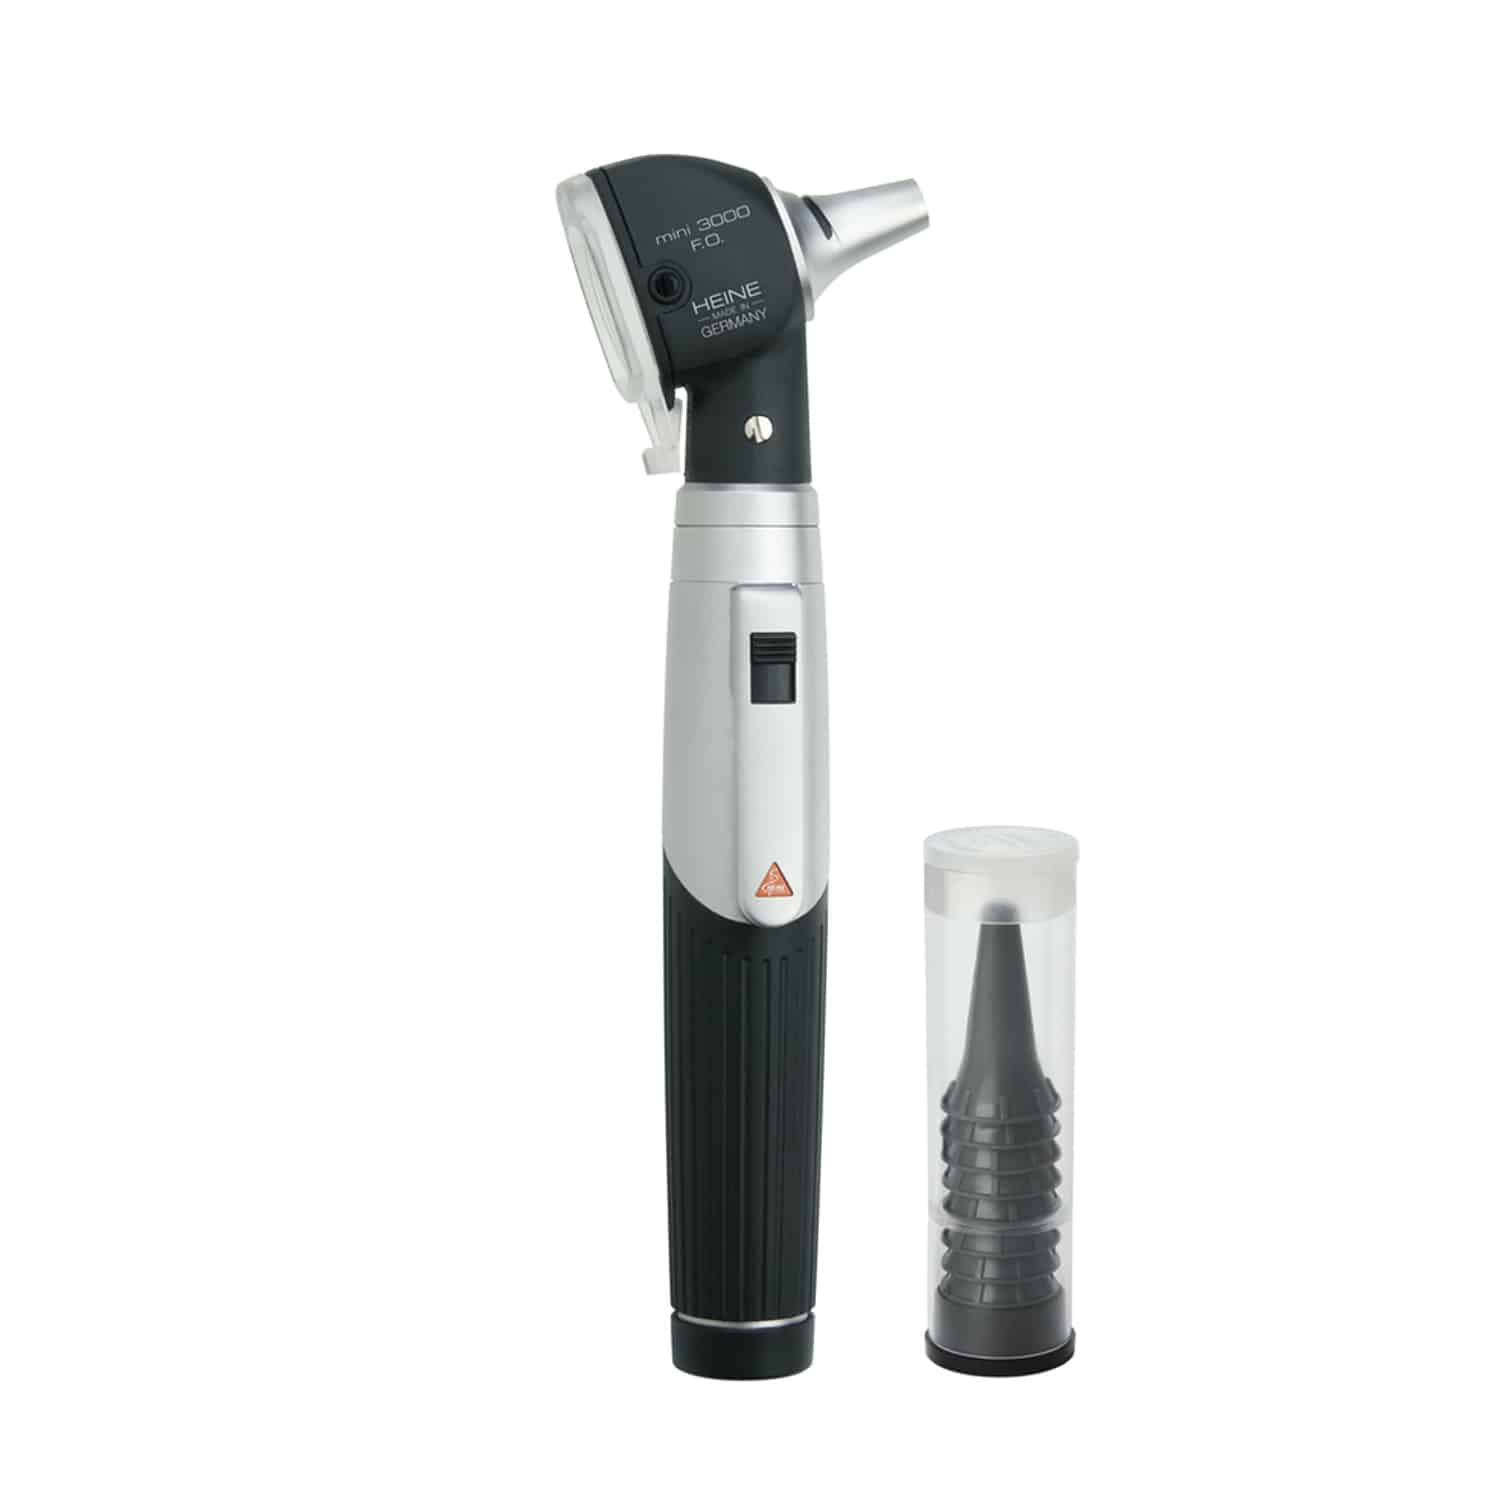 https://static.praxisdienst.com/out/pictures/generated/product/1/1500_1500_100/128497bl_csm_d-001.70.110-heine-otoscope-mini3000.jpg